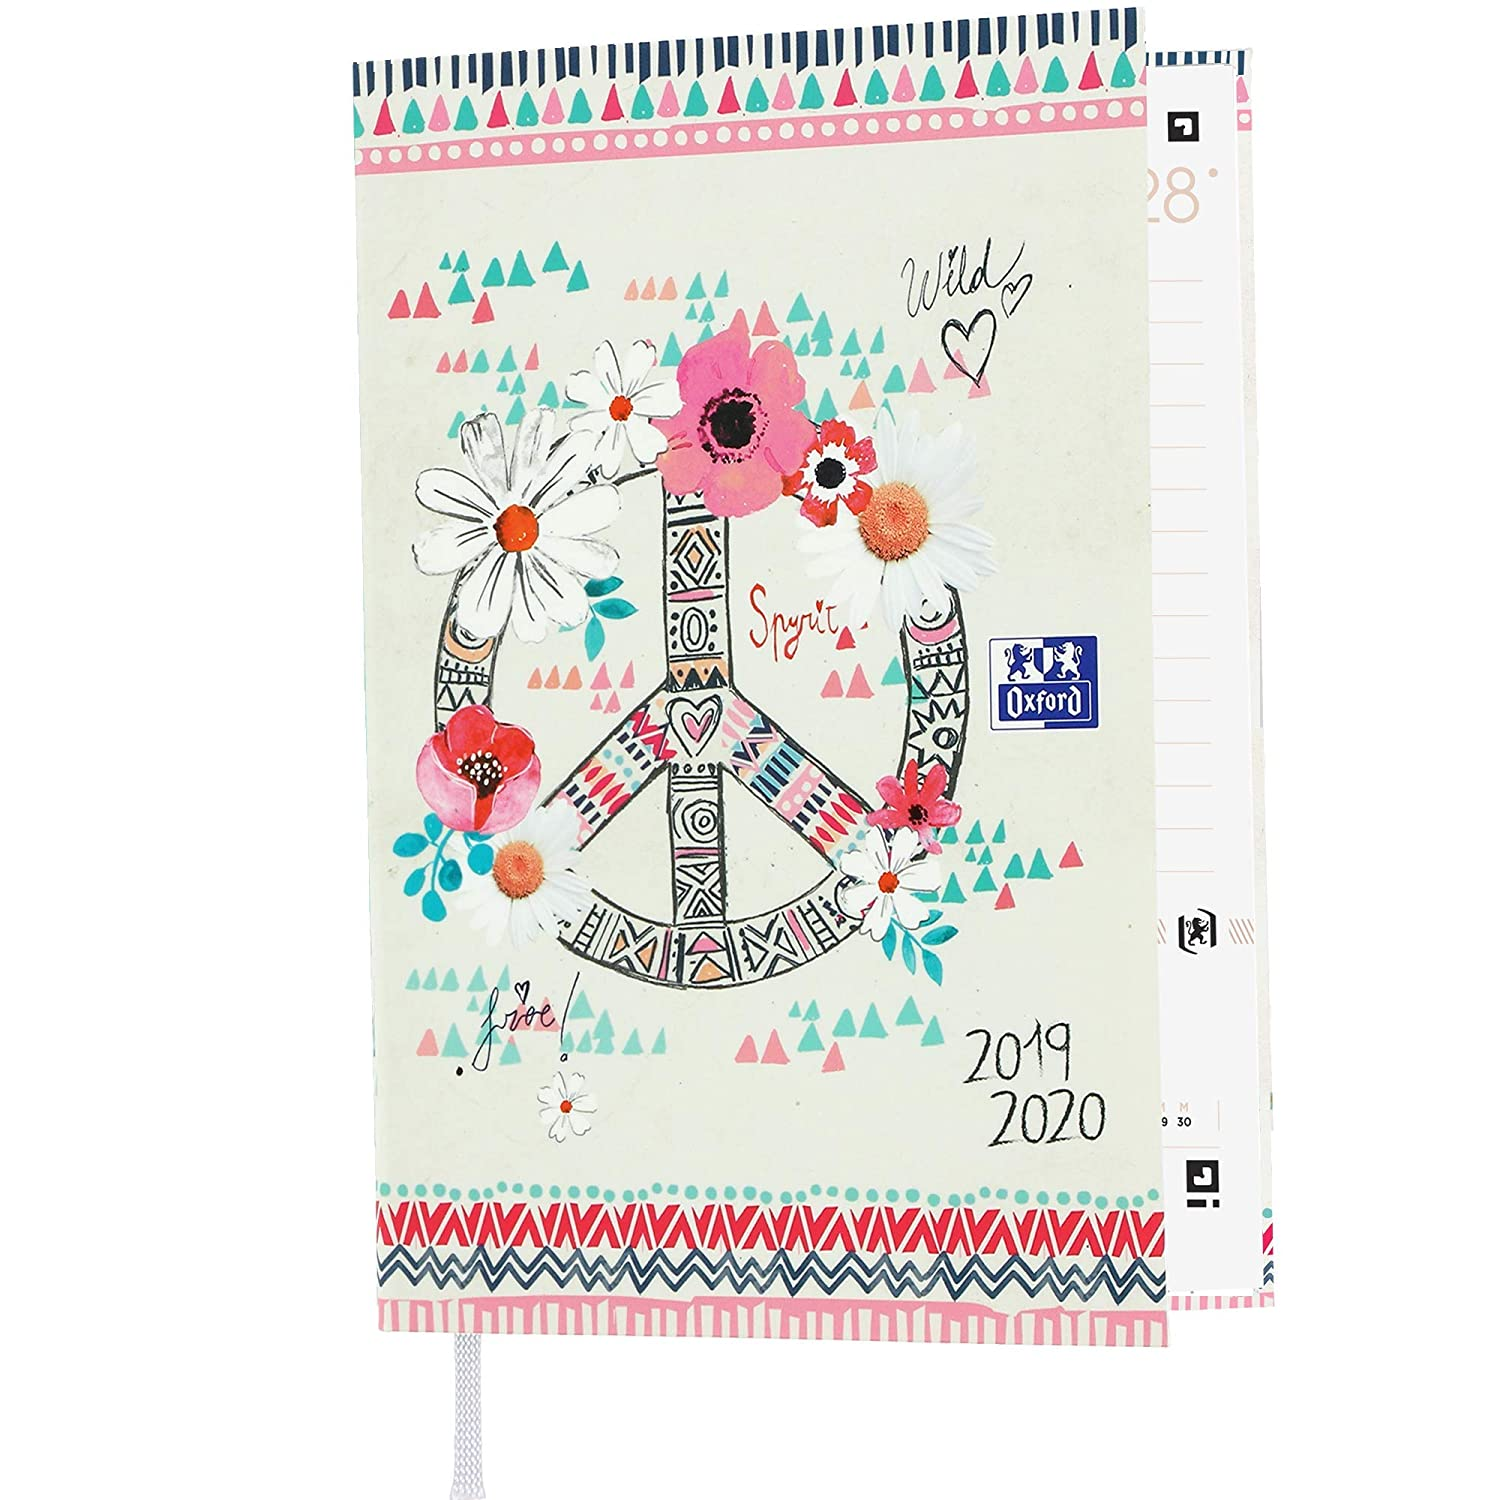 Amazon.com : Oxford Boho Chic Daily Academic Diary 2019-2020 ...